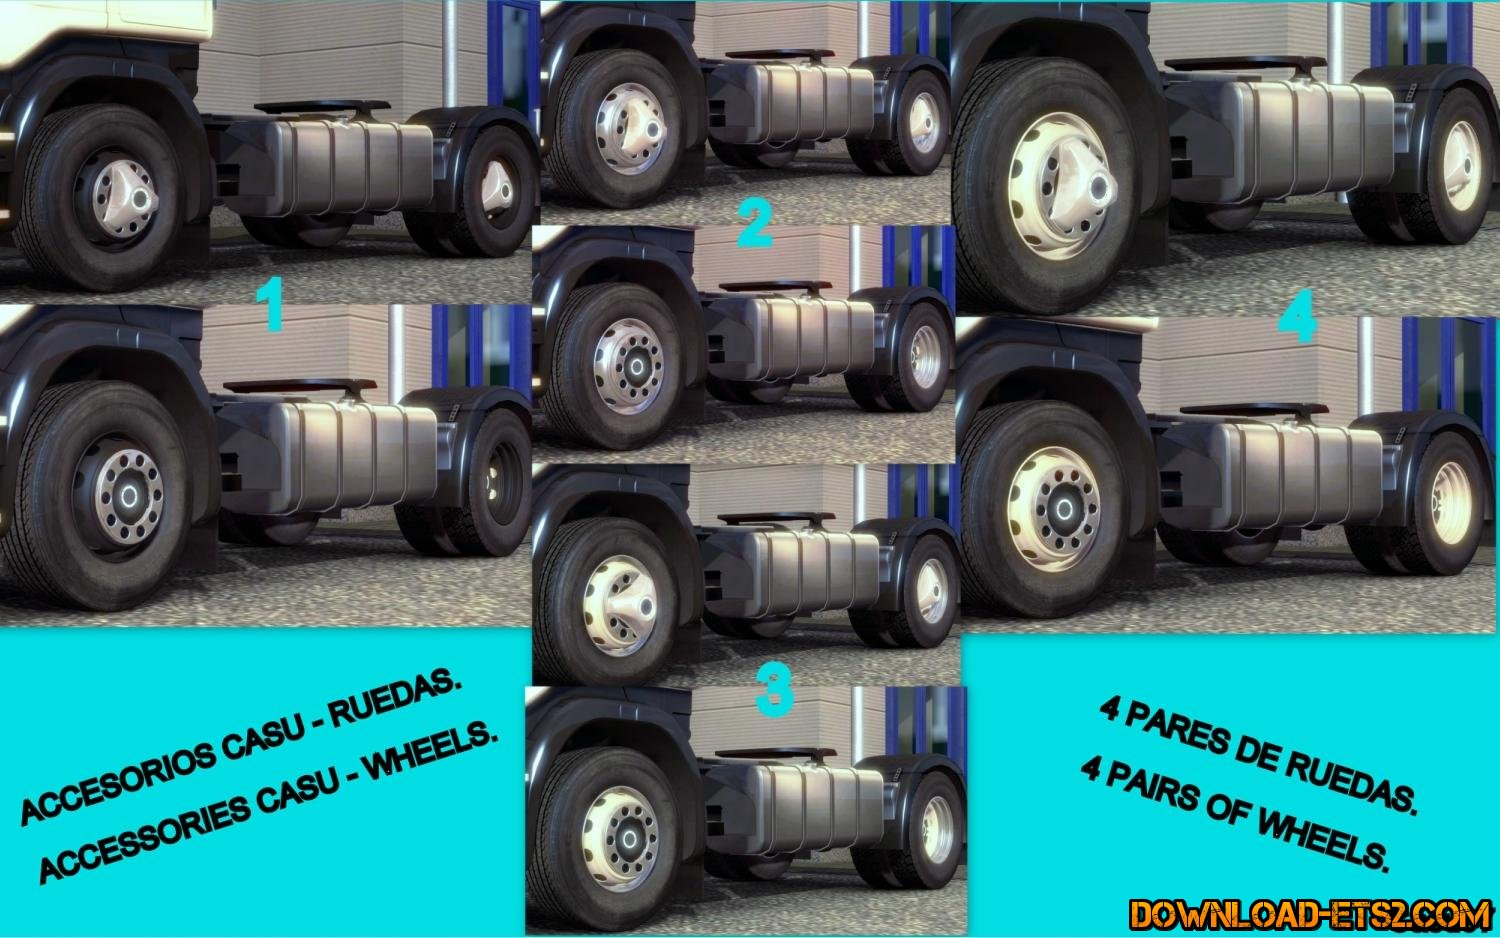 ACCESSORIES CASU – 4 PAIRS OF WHEELS FIXED for ETS2